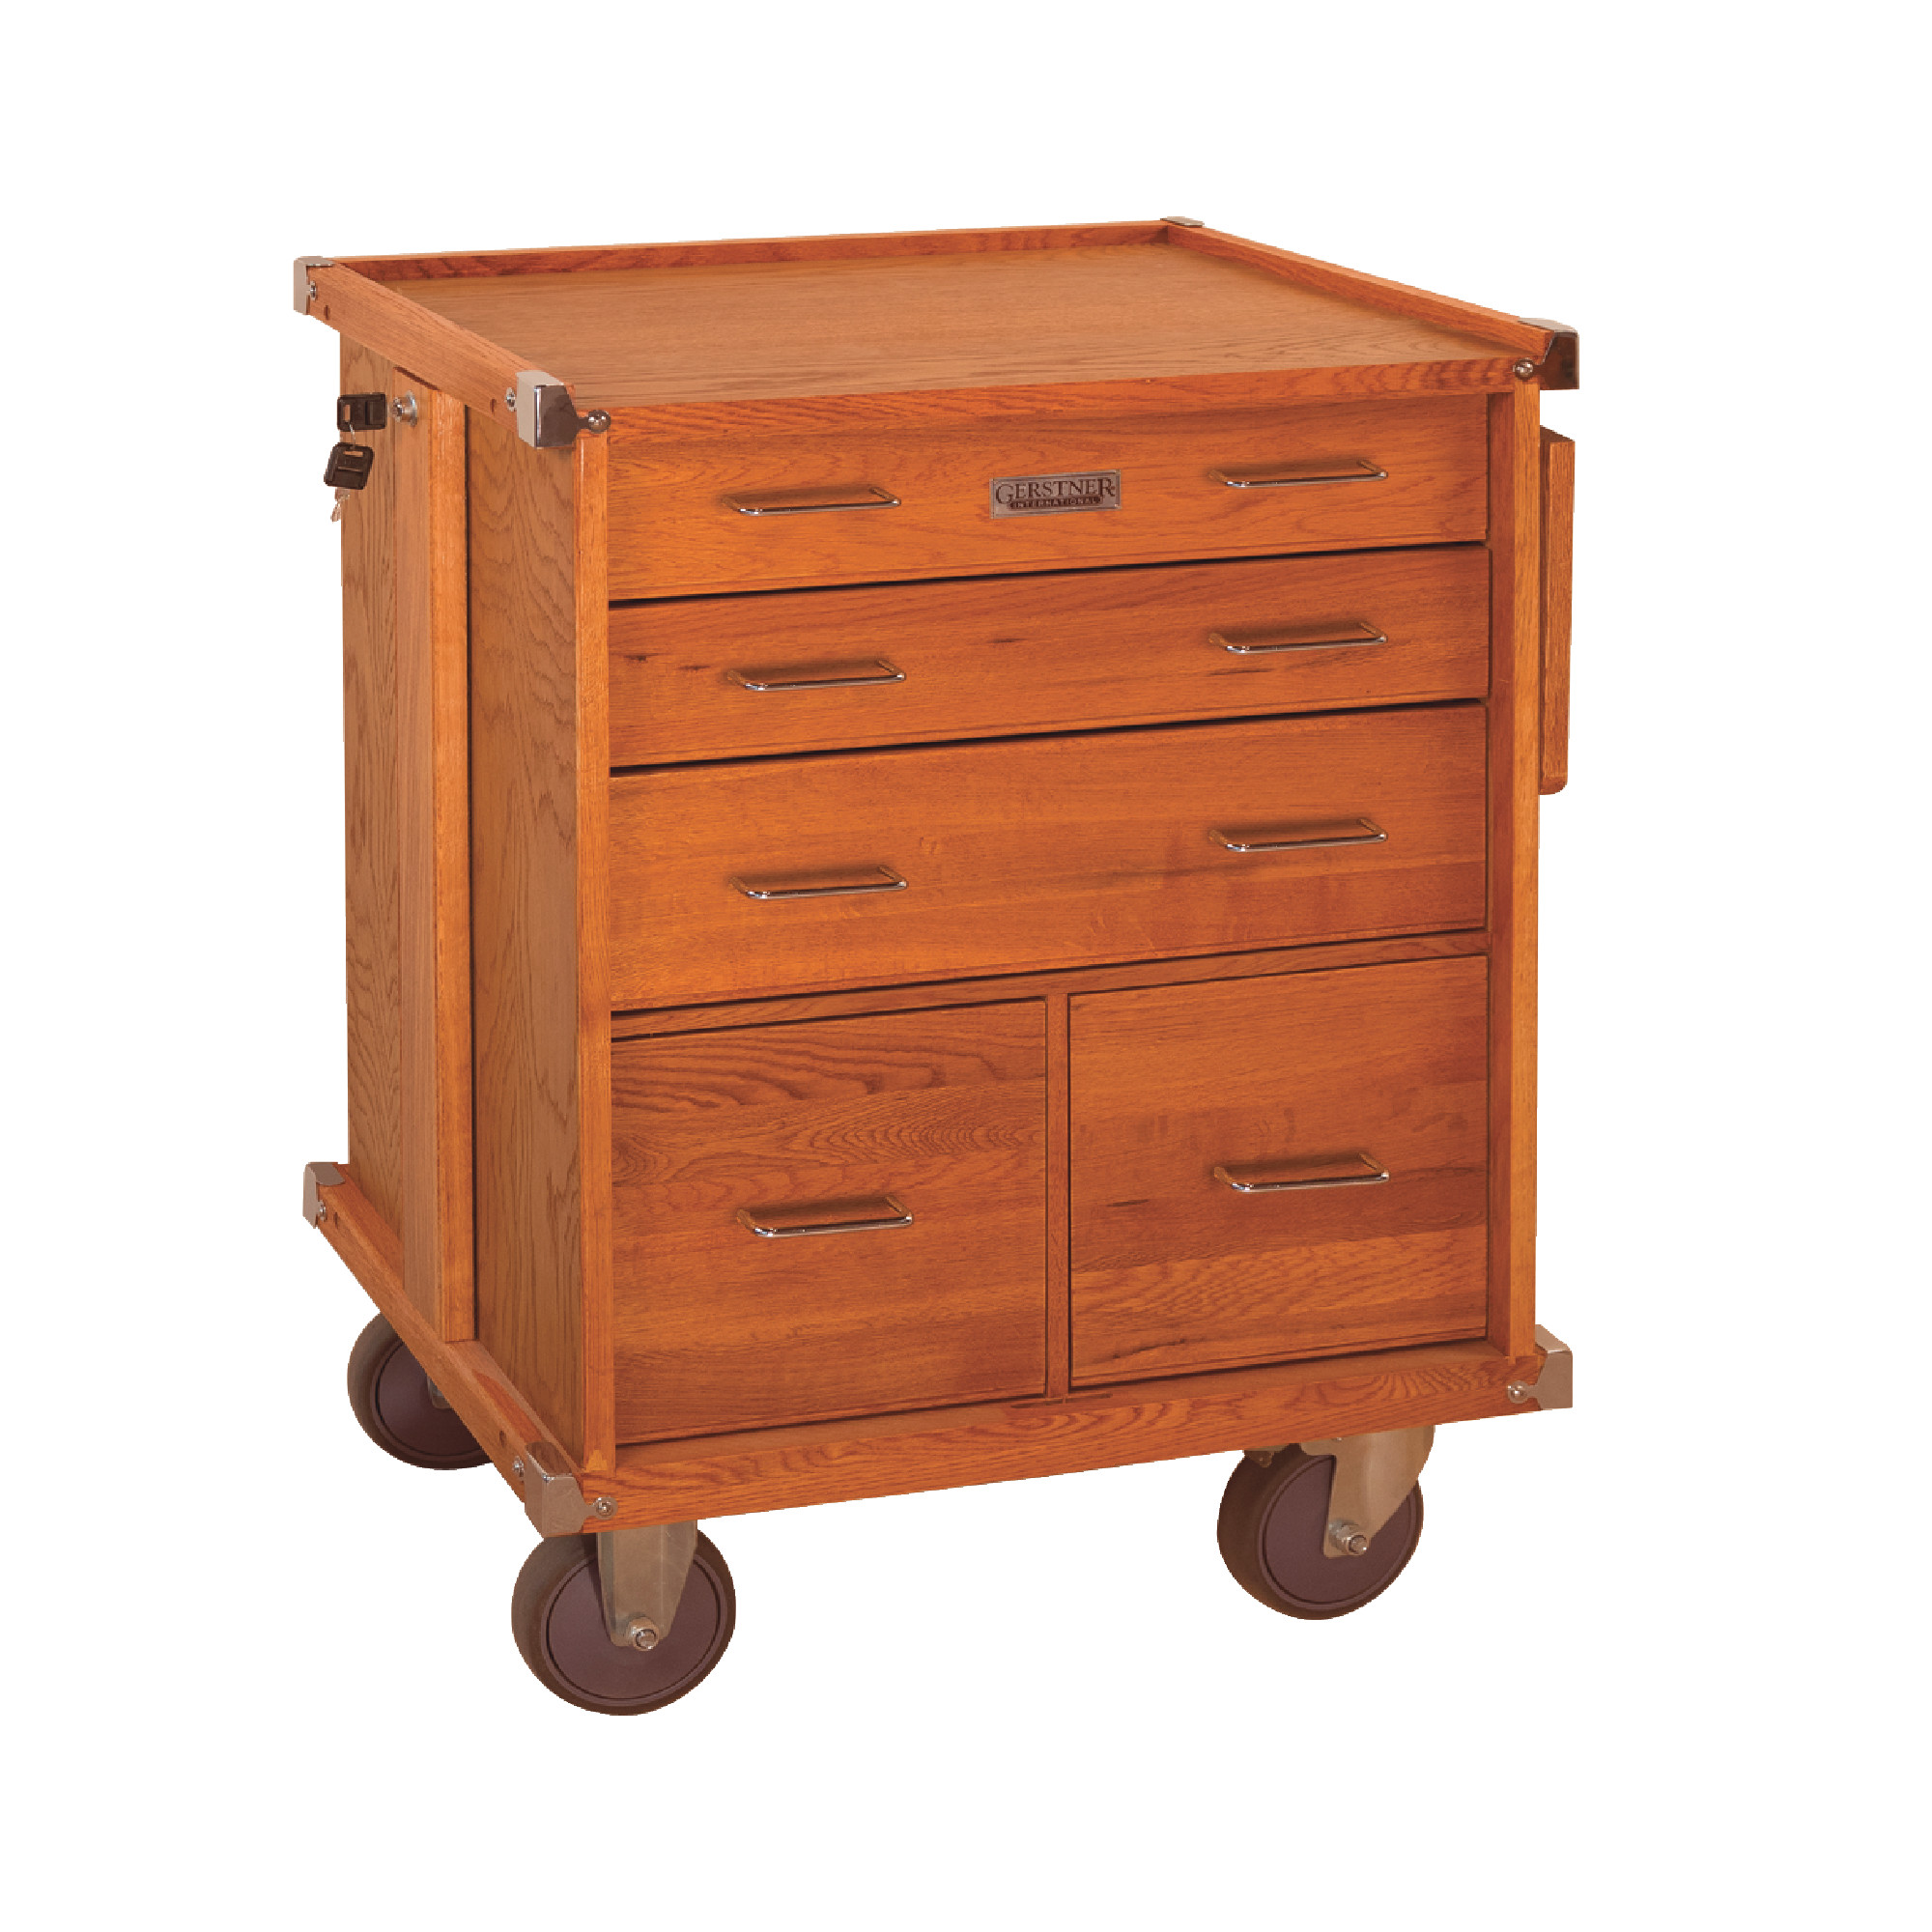 5-Drawer Roller Cabinet with Full Extension Drawer Slides and Collapsible Side Work Shelf